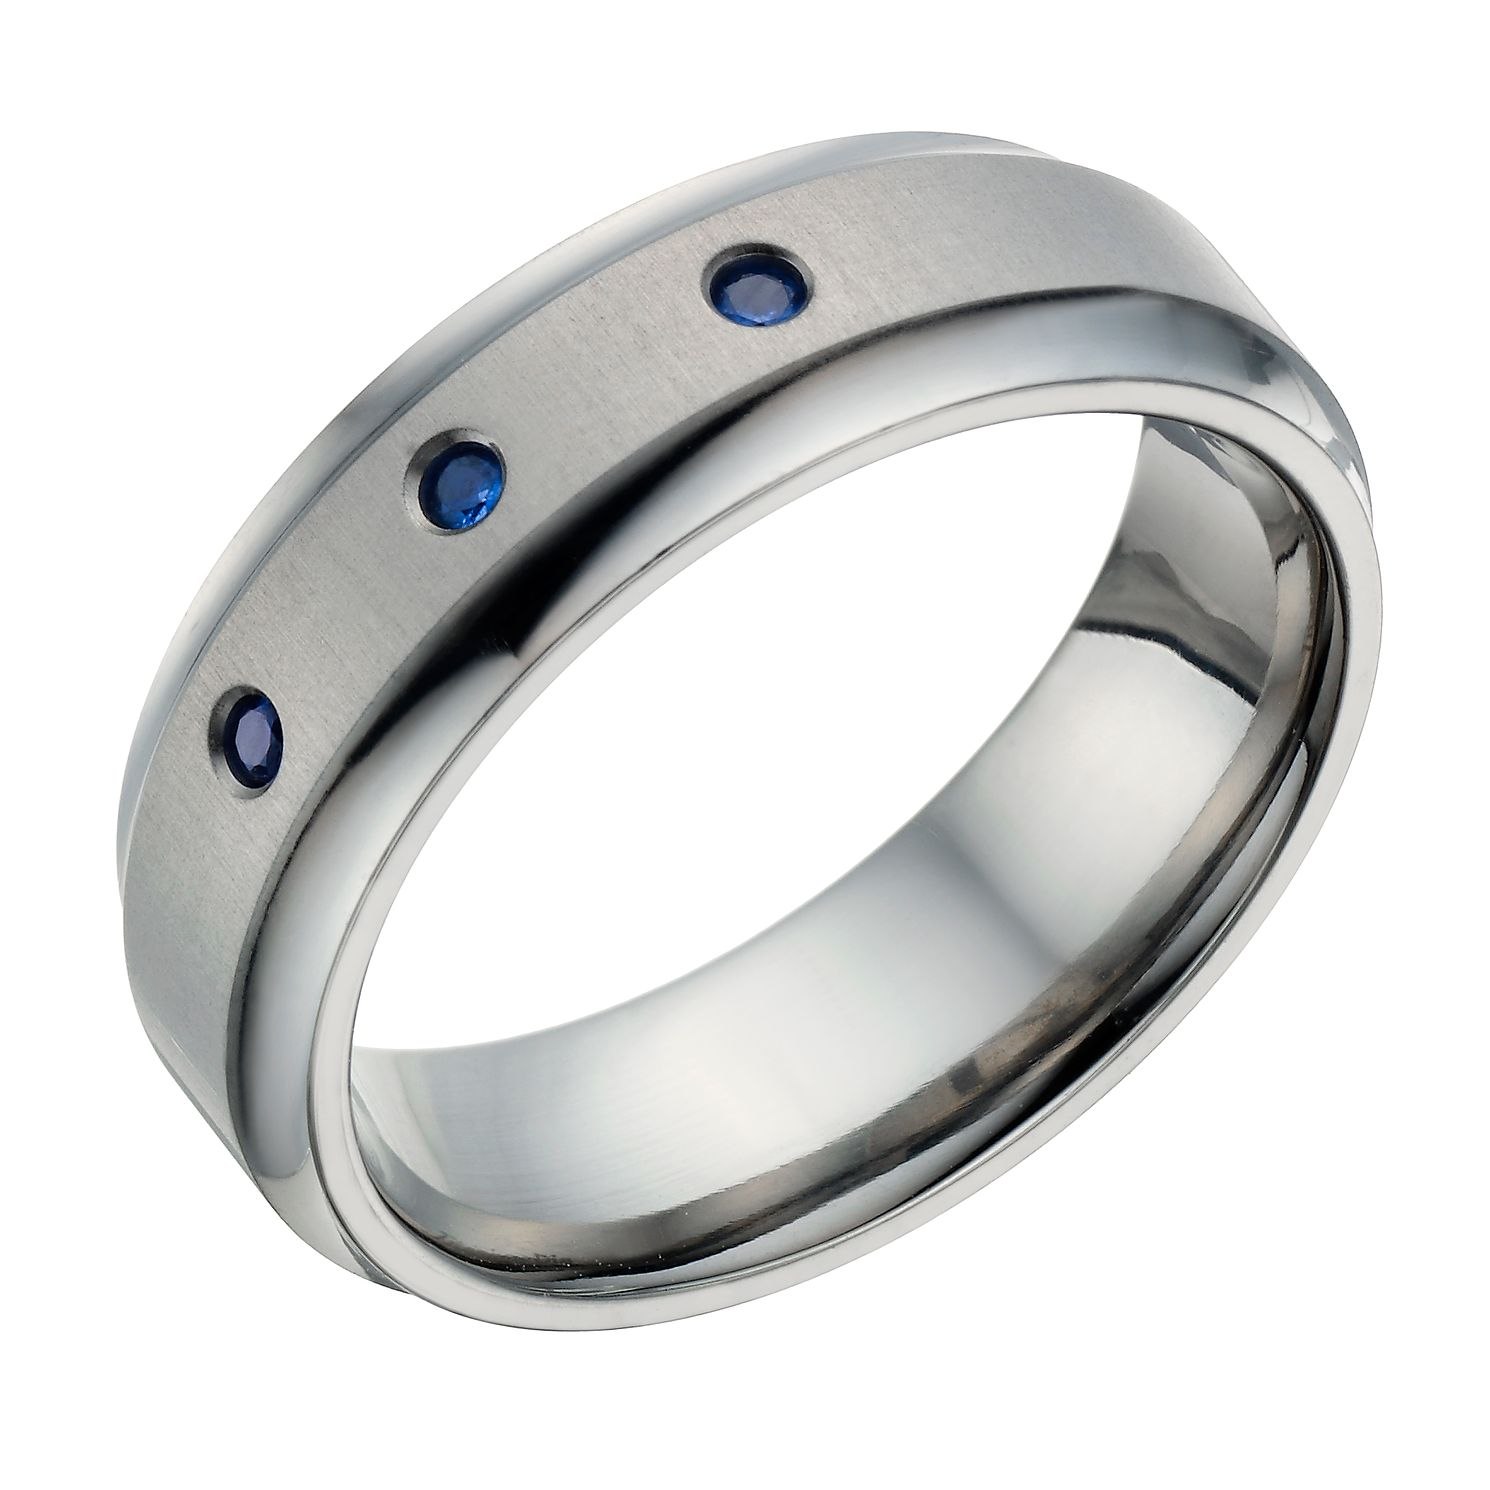 details tungsten bands ori white ringscollection gold mens and rose ring wedding two toned tone band